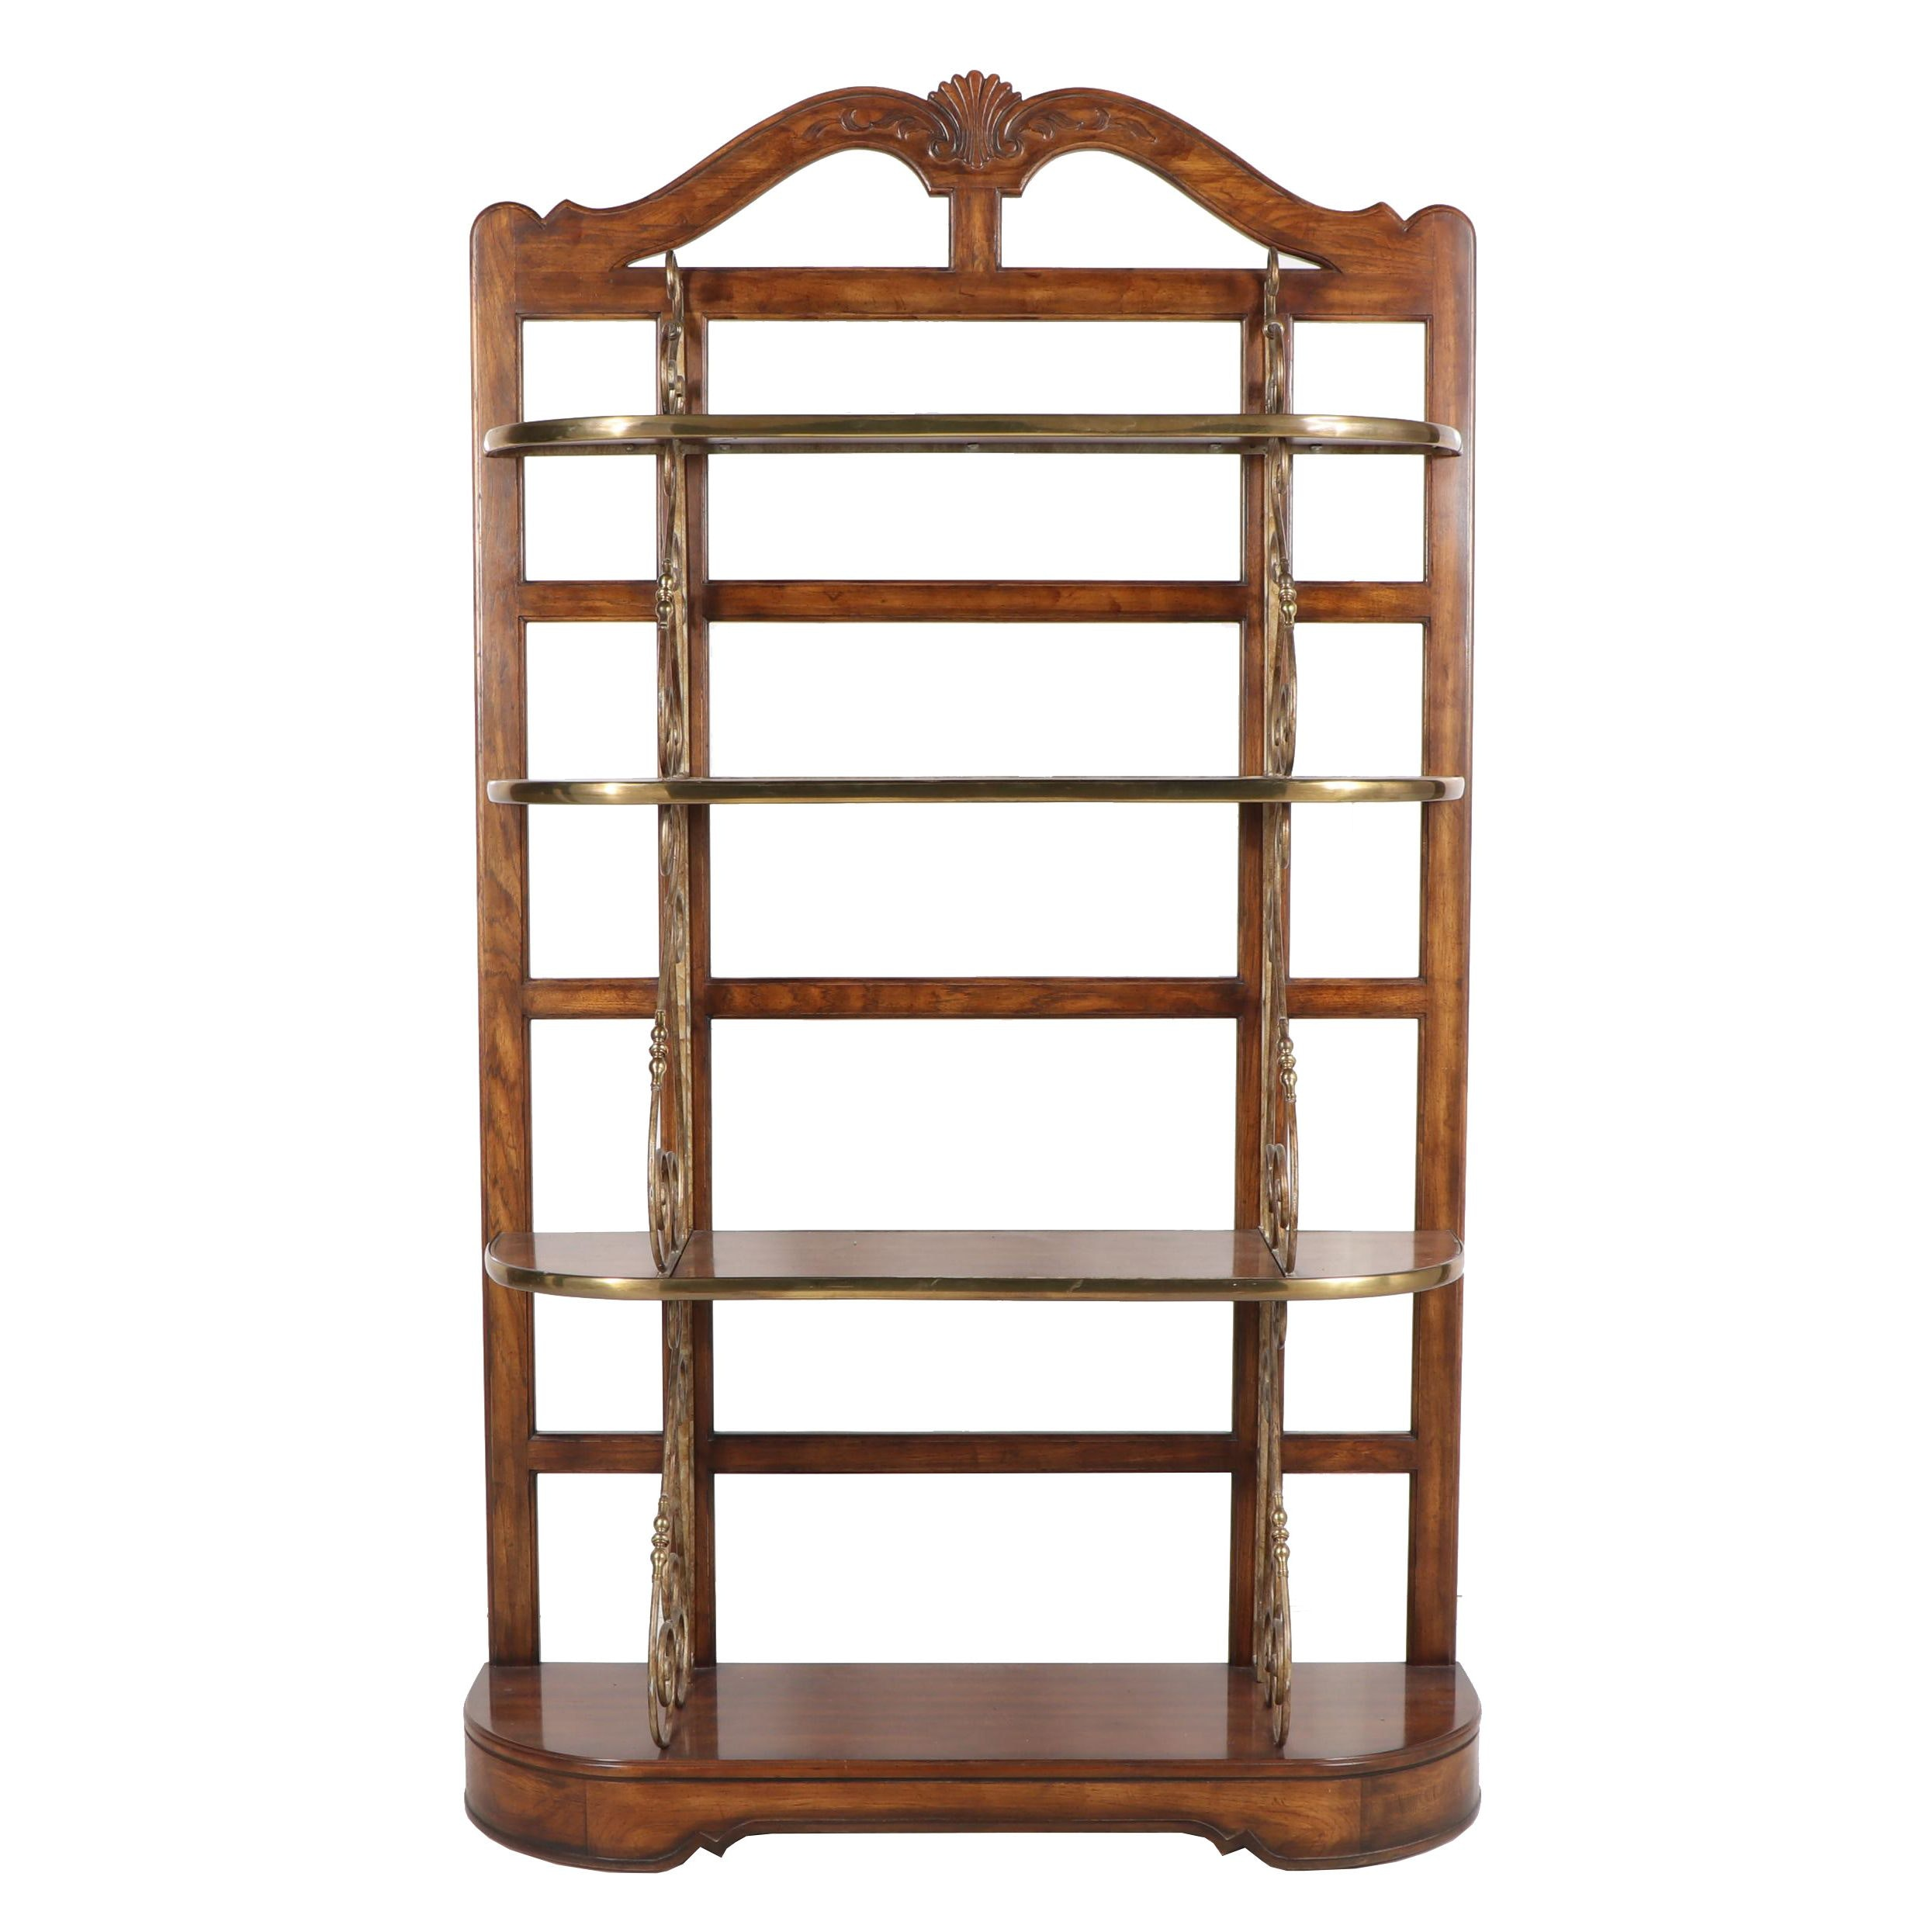 French Provincial Style Pecan and Brass Étagère by Drexel-Heritage, Late 20th C.